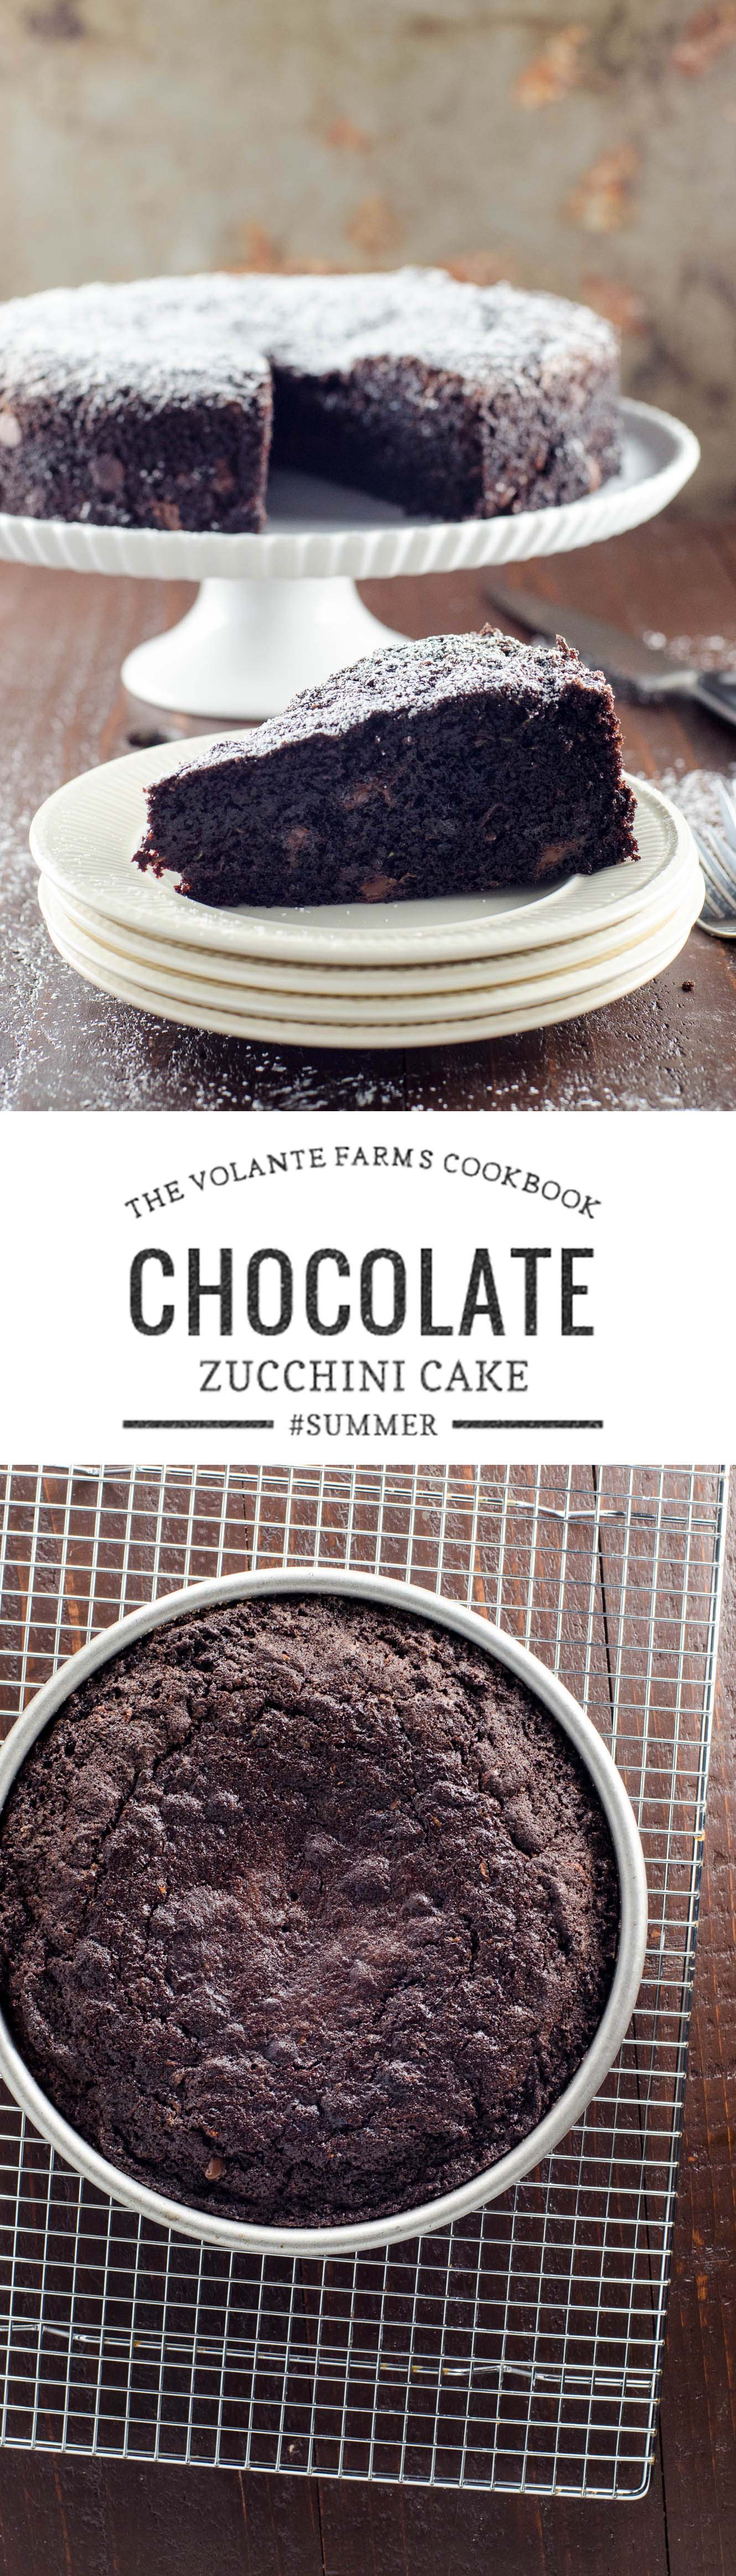 This wonderful, unfussy chocolate zucchini cake is adapted from The Volante Farms cookbook, celebrating the market of the same name in Needham, MA.